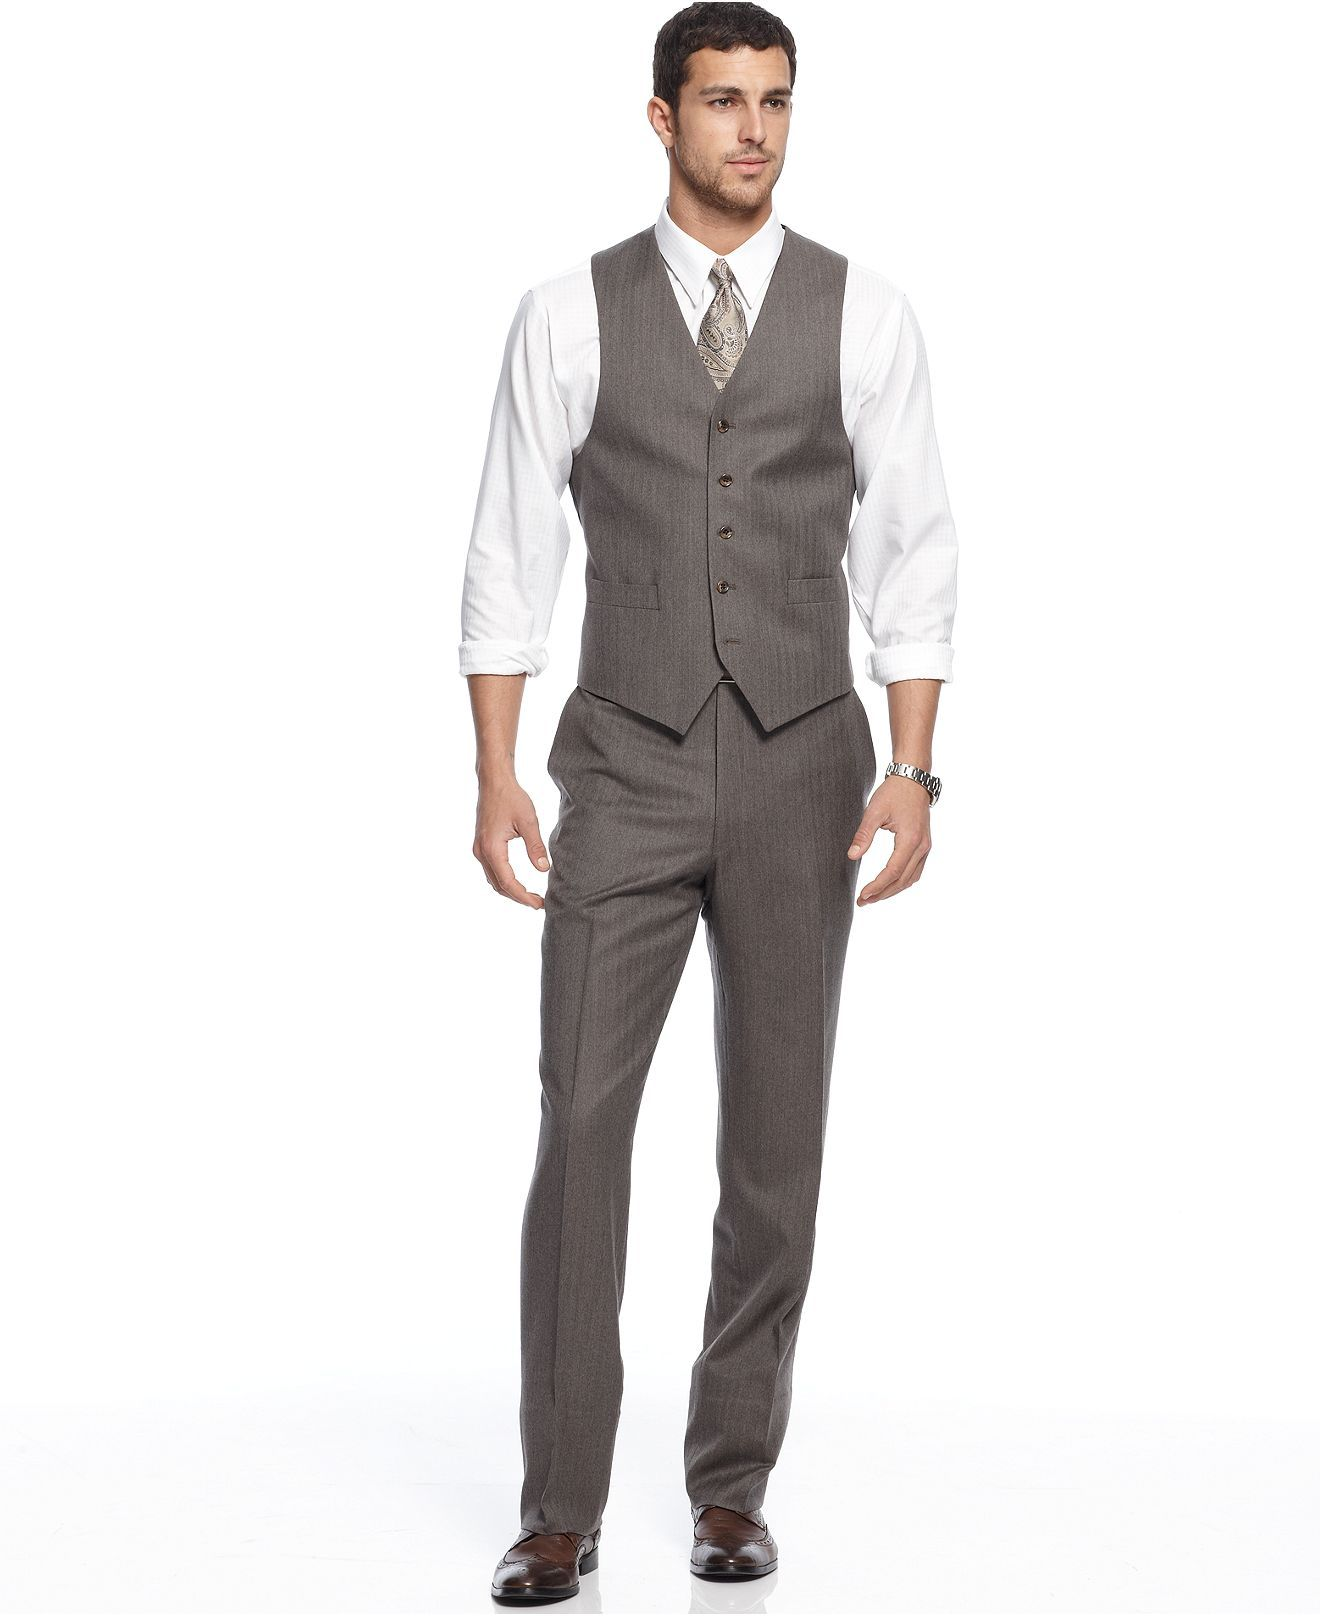 Michael by Michael Kors Suit, Vested Tan Herringbone Flannel Suit ...